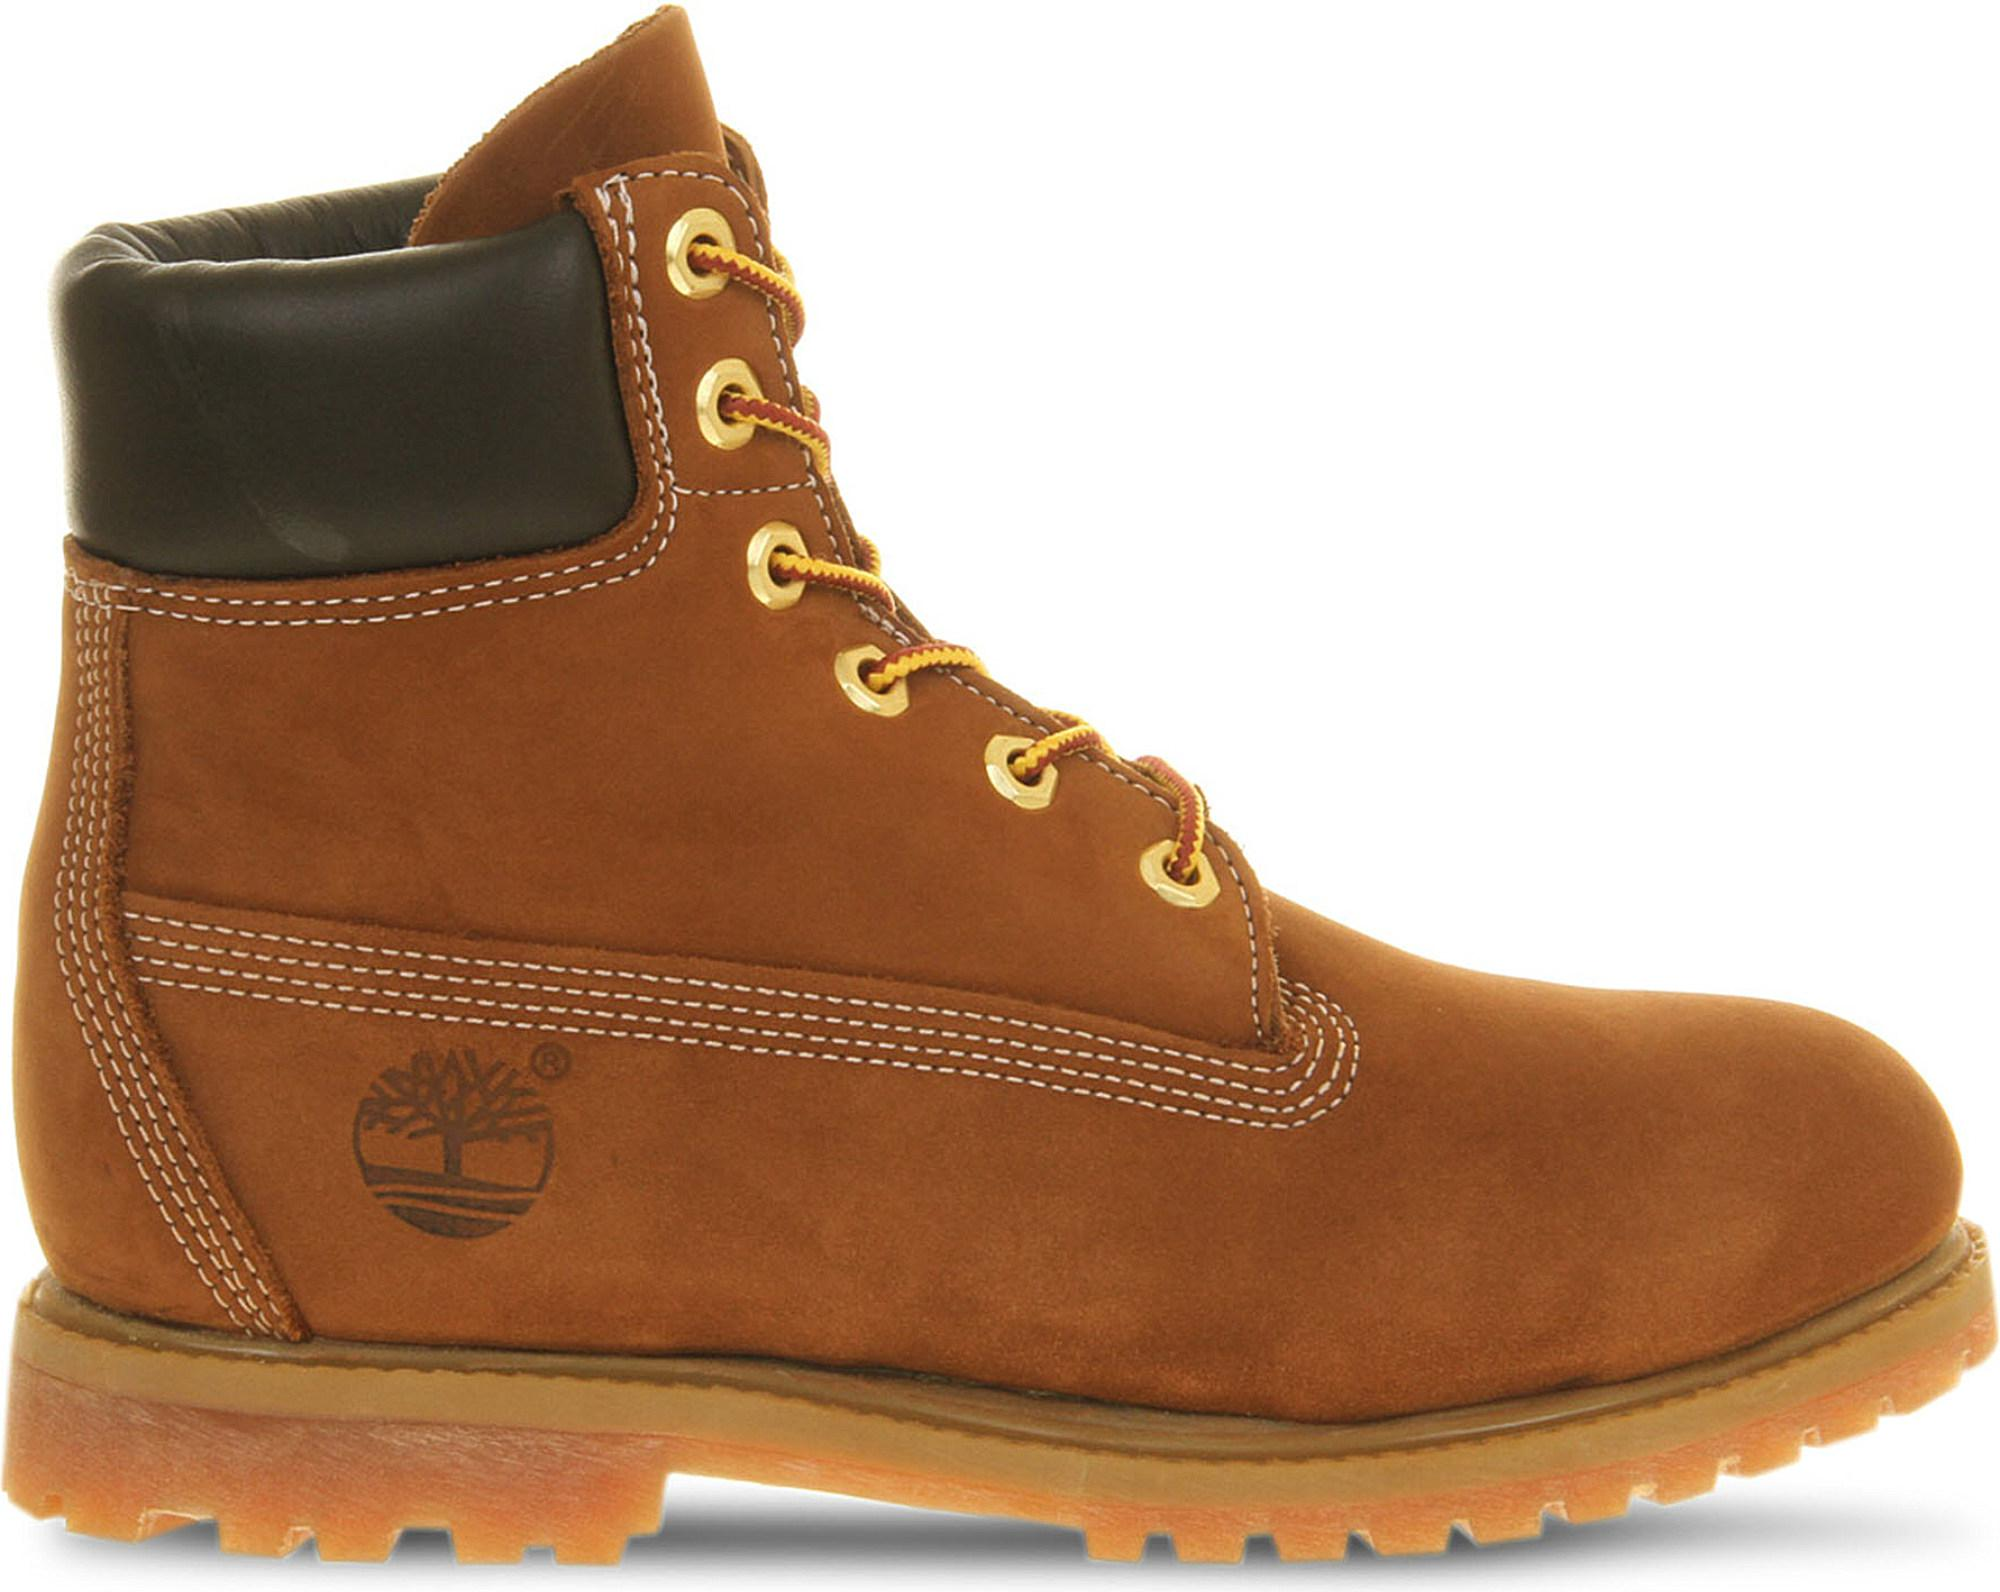 b4a15400ae79 Lyst - Timberland Earthkeepers 6-inch Premium Boots in Brown